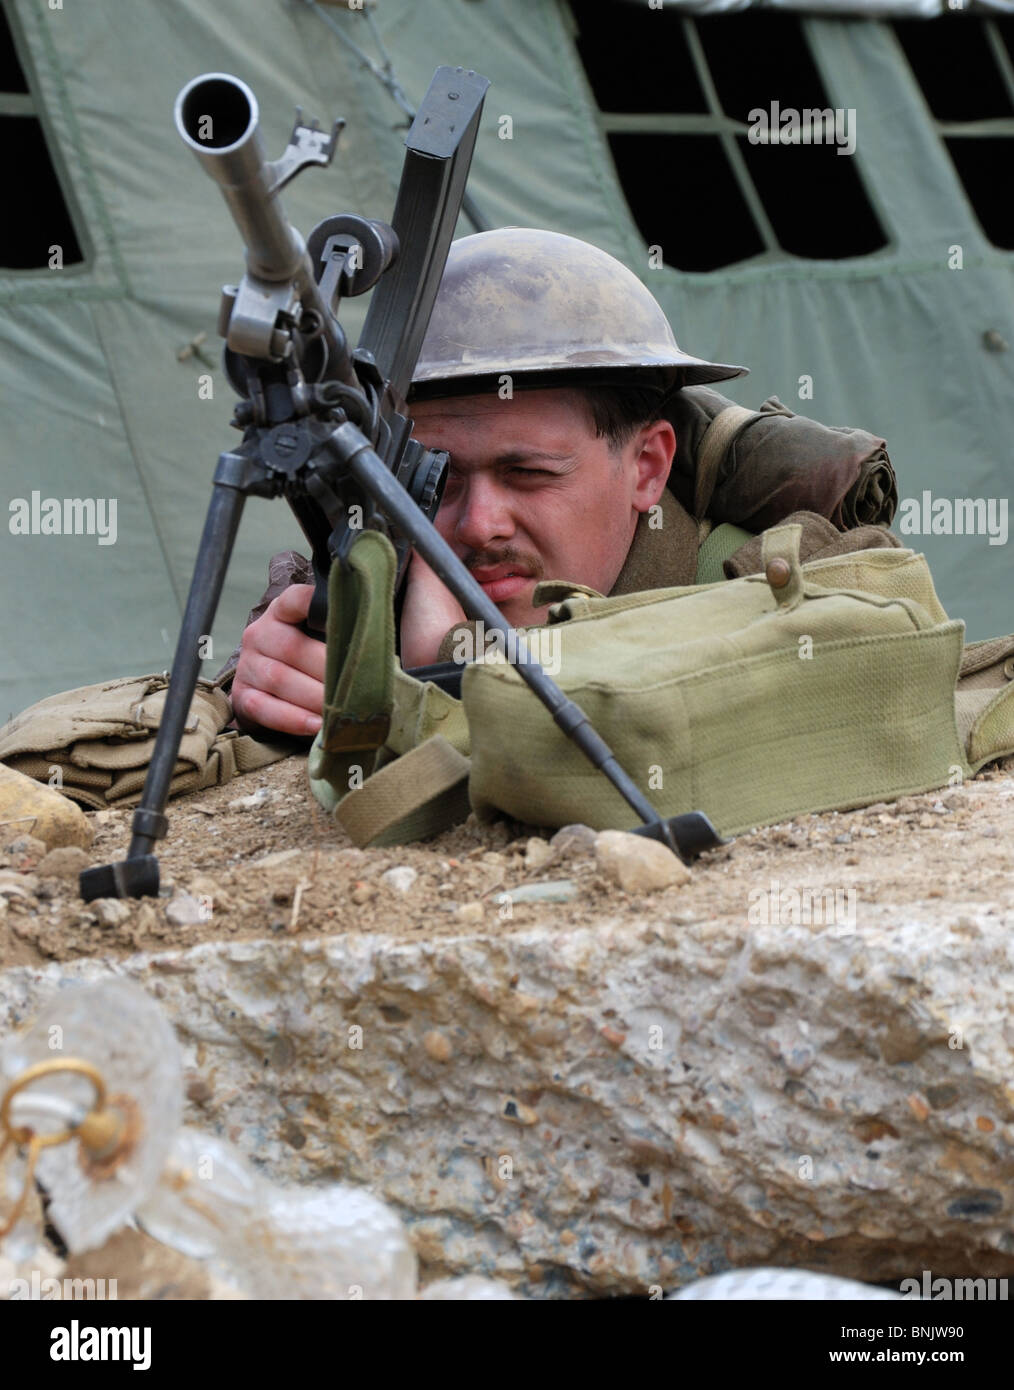 A re-enactor in the role of a second world war British soldier defending a position with a Bren machine gun. - Stock Image